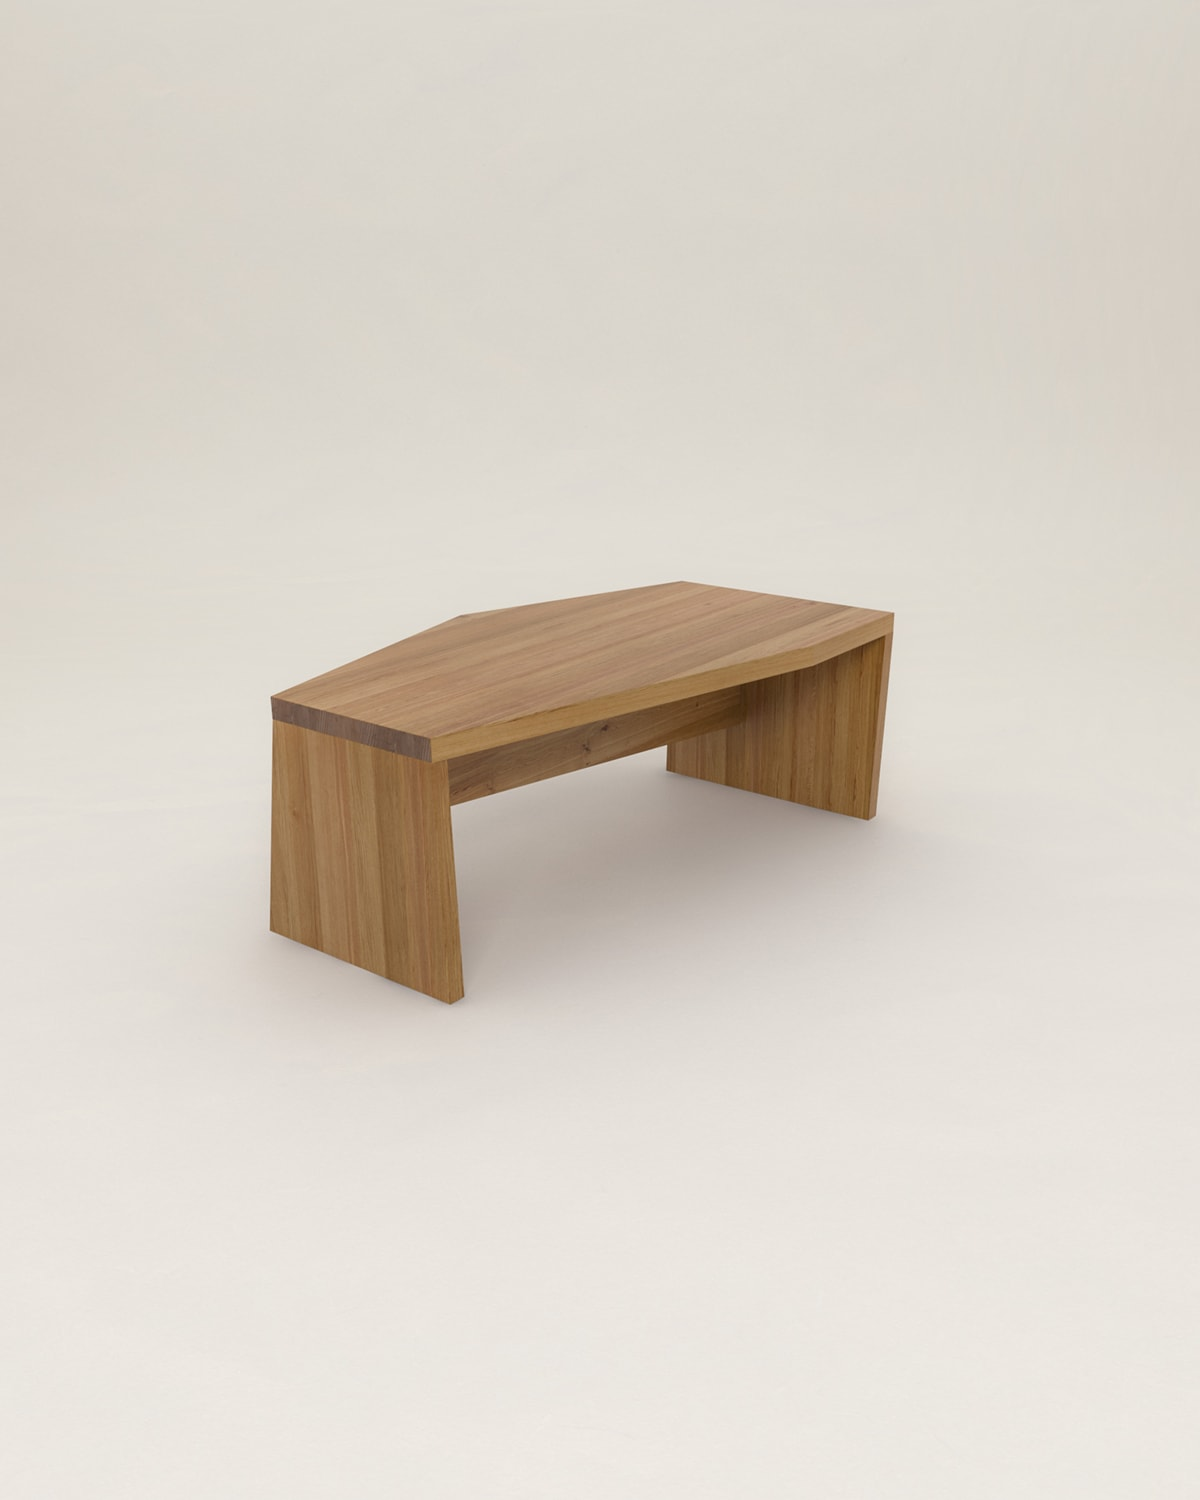 crooked_coffee_table_06_2